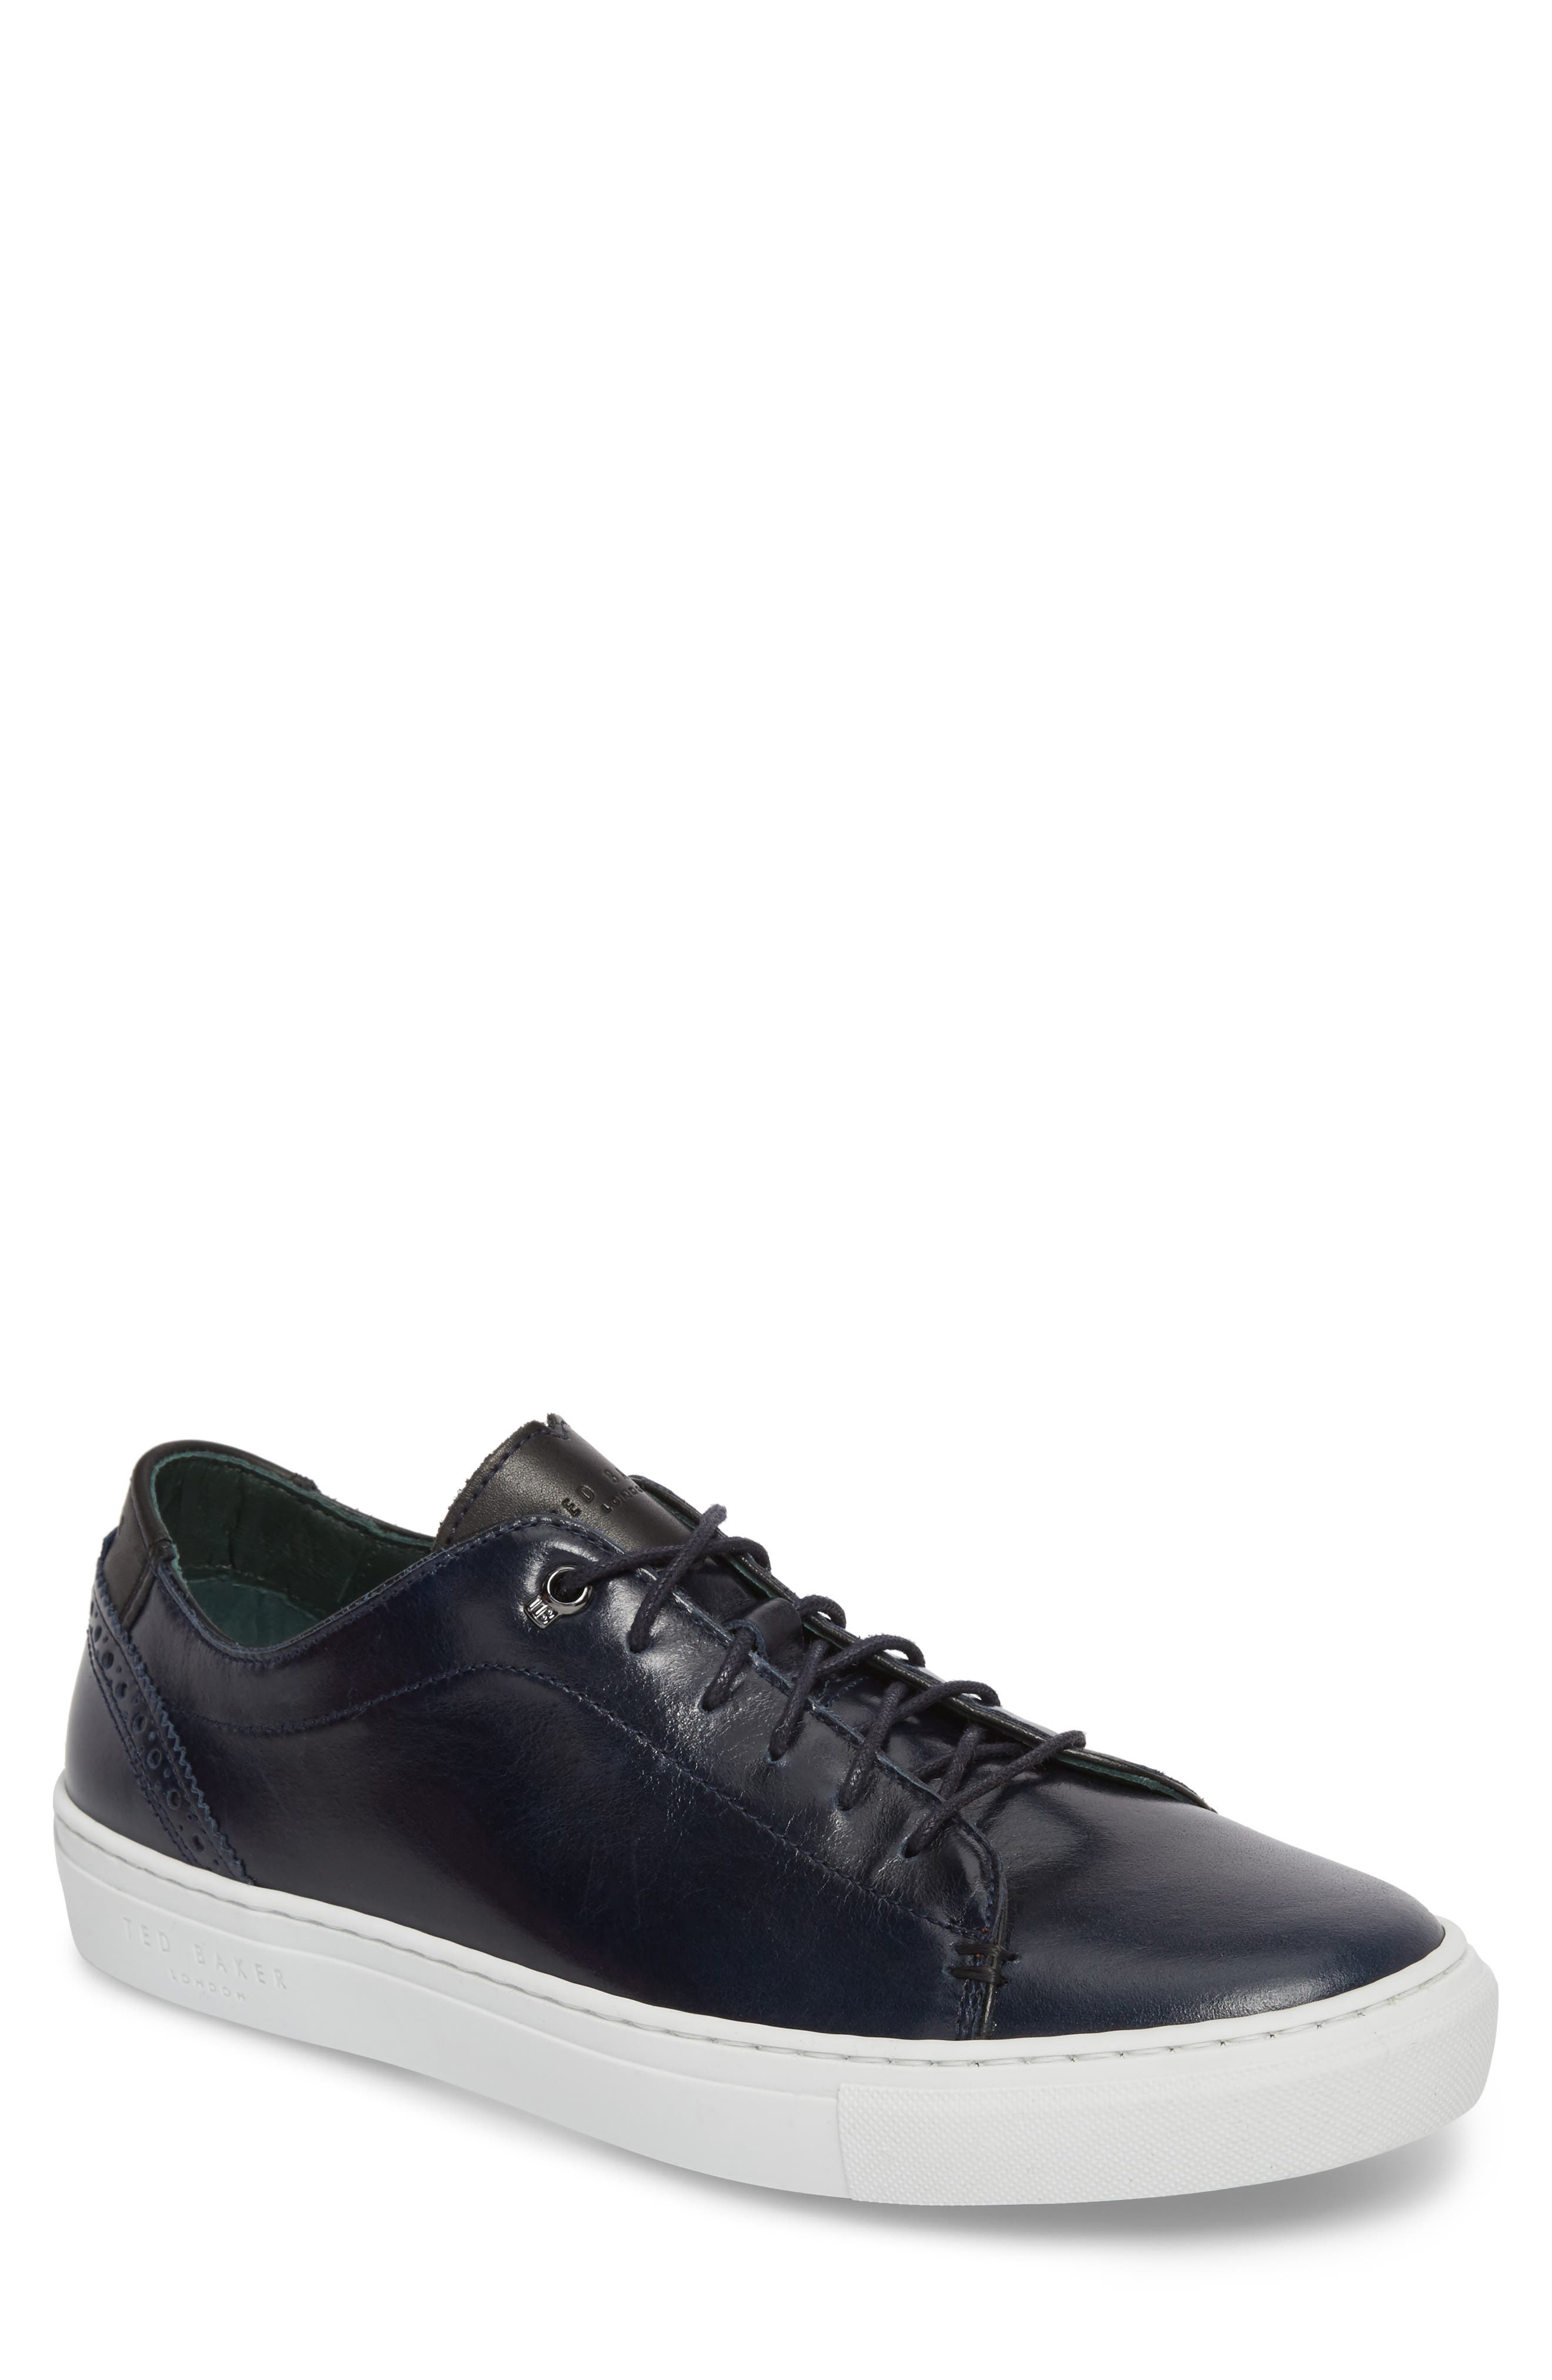 Duuke 2 Sneaker,                             Main thumbnail 1, color,                             Midnight Blue Leather